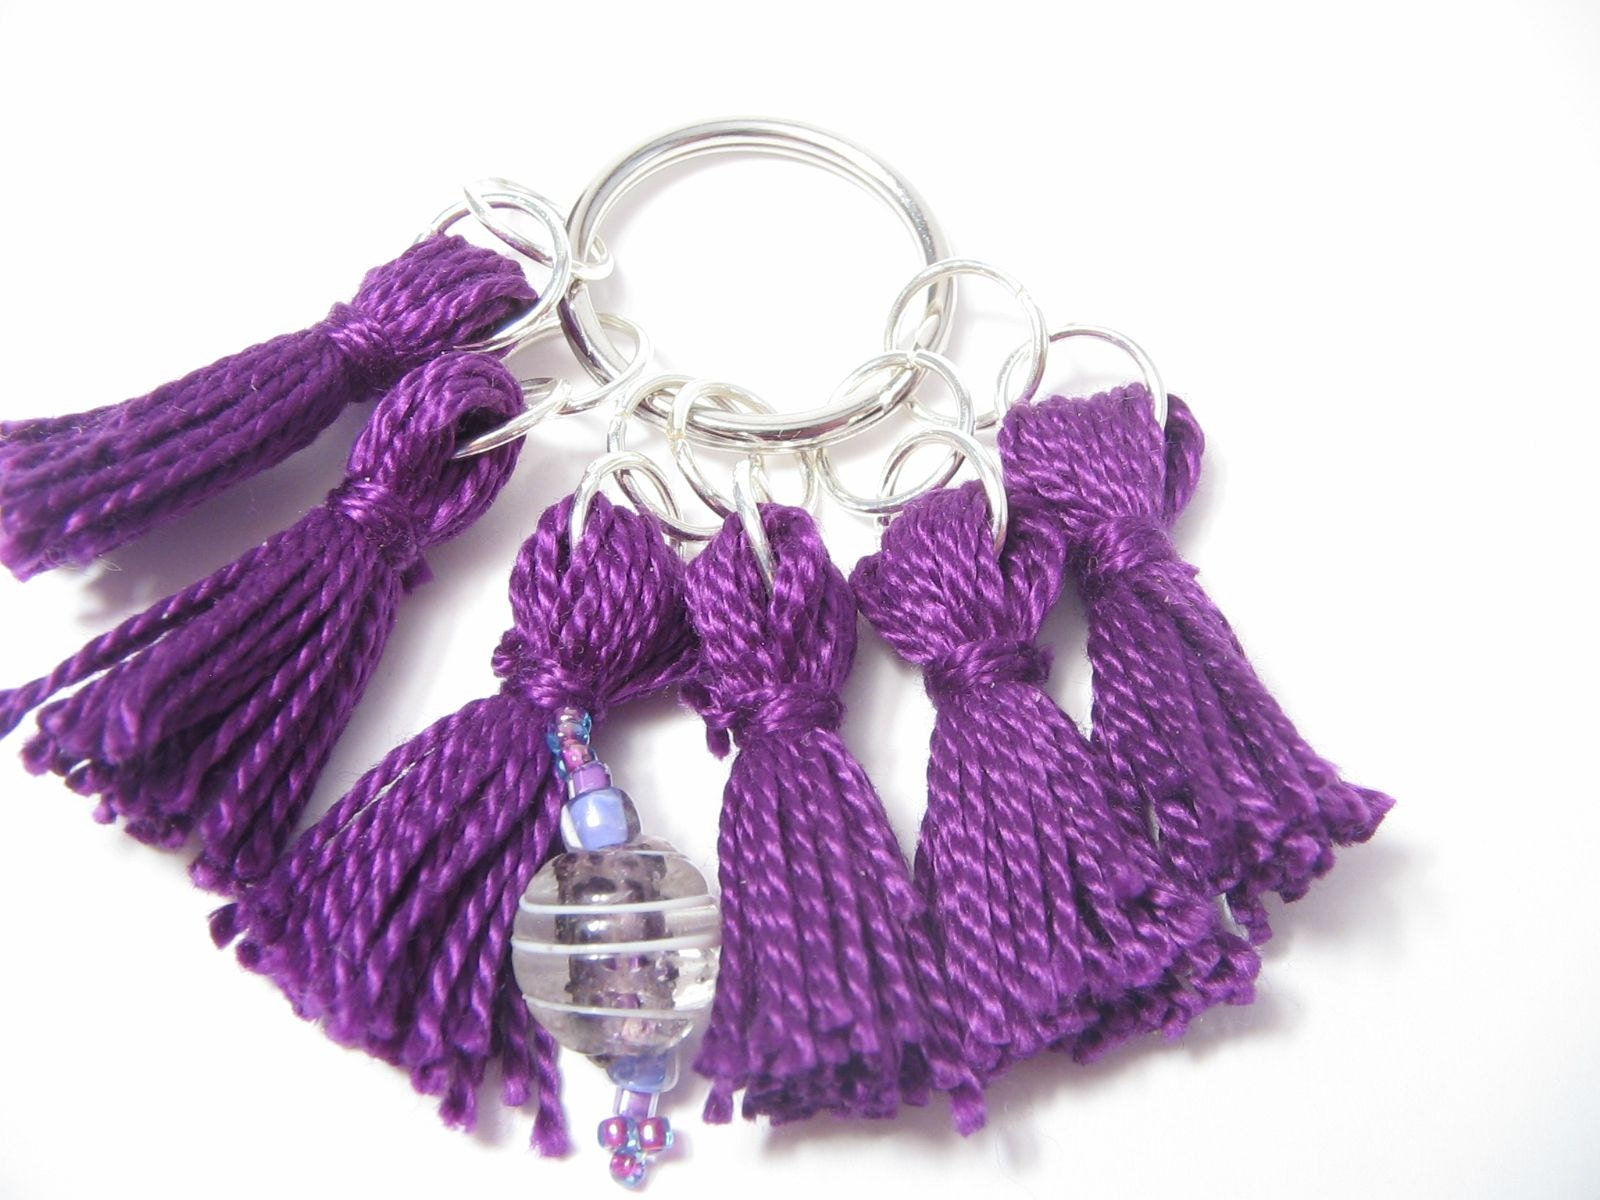 Dark purple stitch marker set (with beaded row marker) from Lizbeths Garden